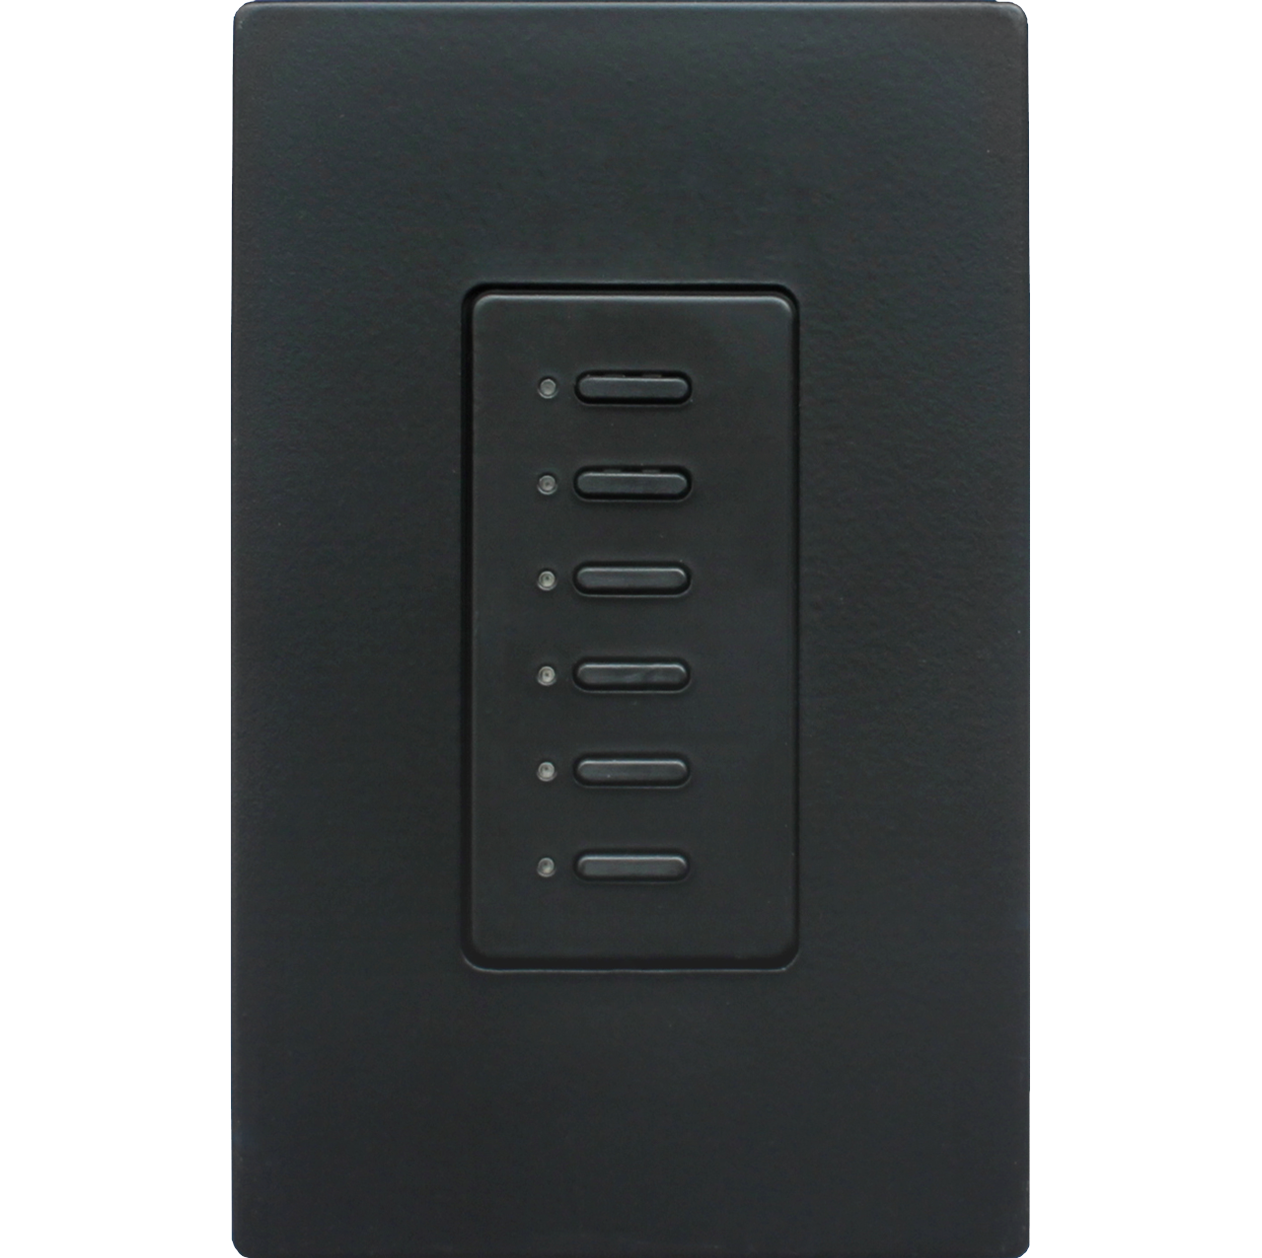 Ultra Series Wall Switch Touch Plate